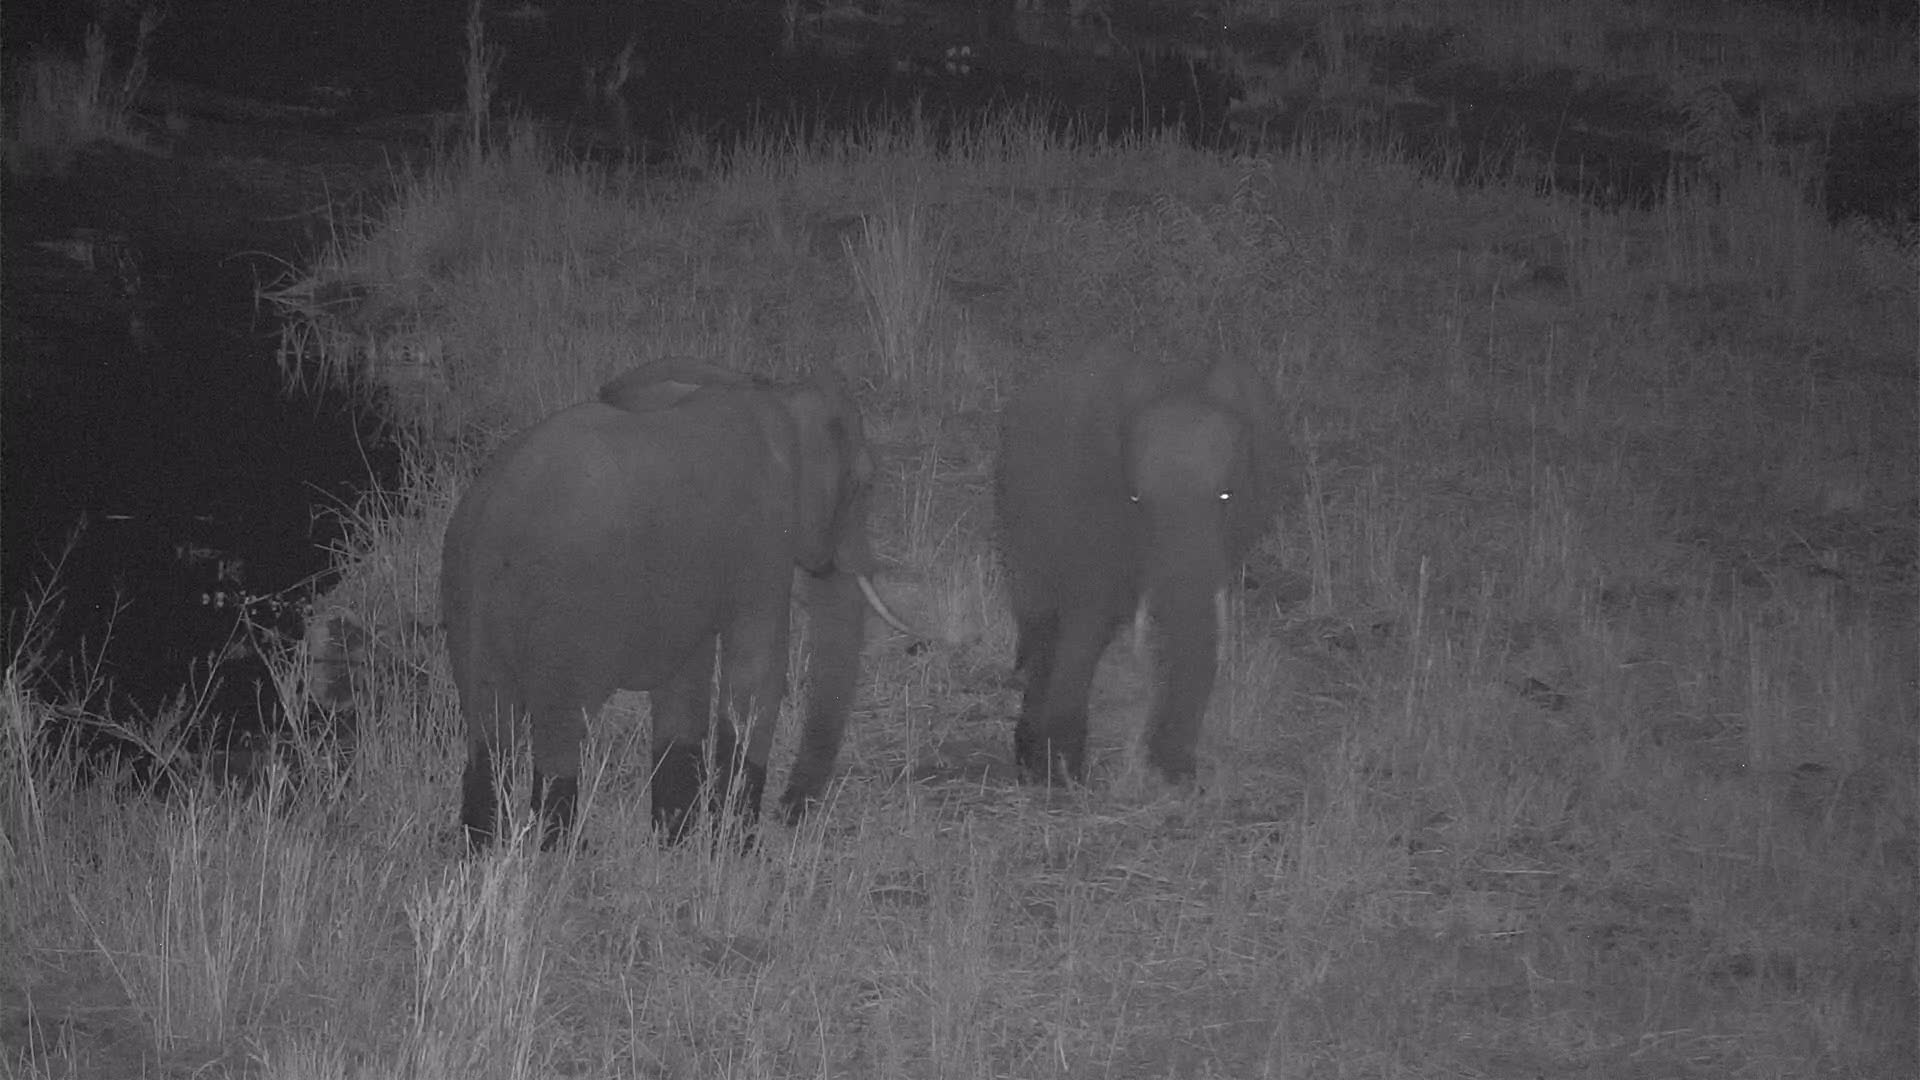 VIDEO: Elephants - a bit aggressive - pushing each other